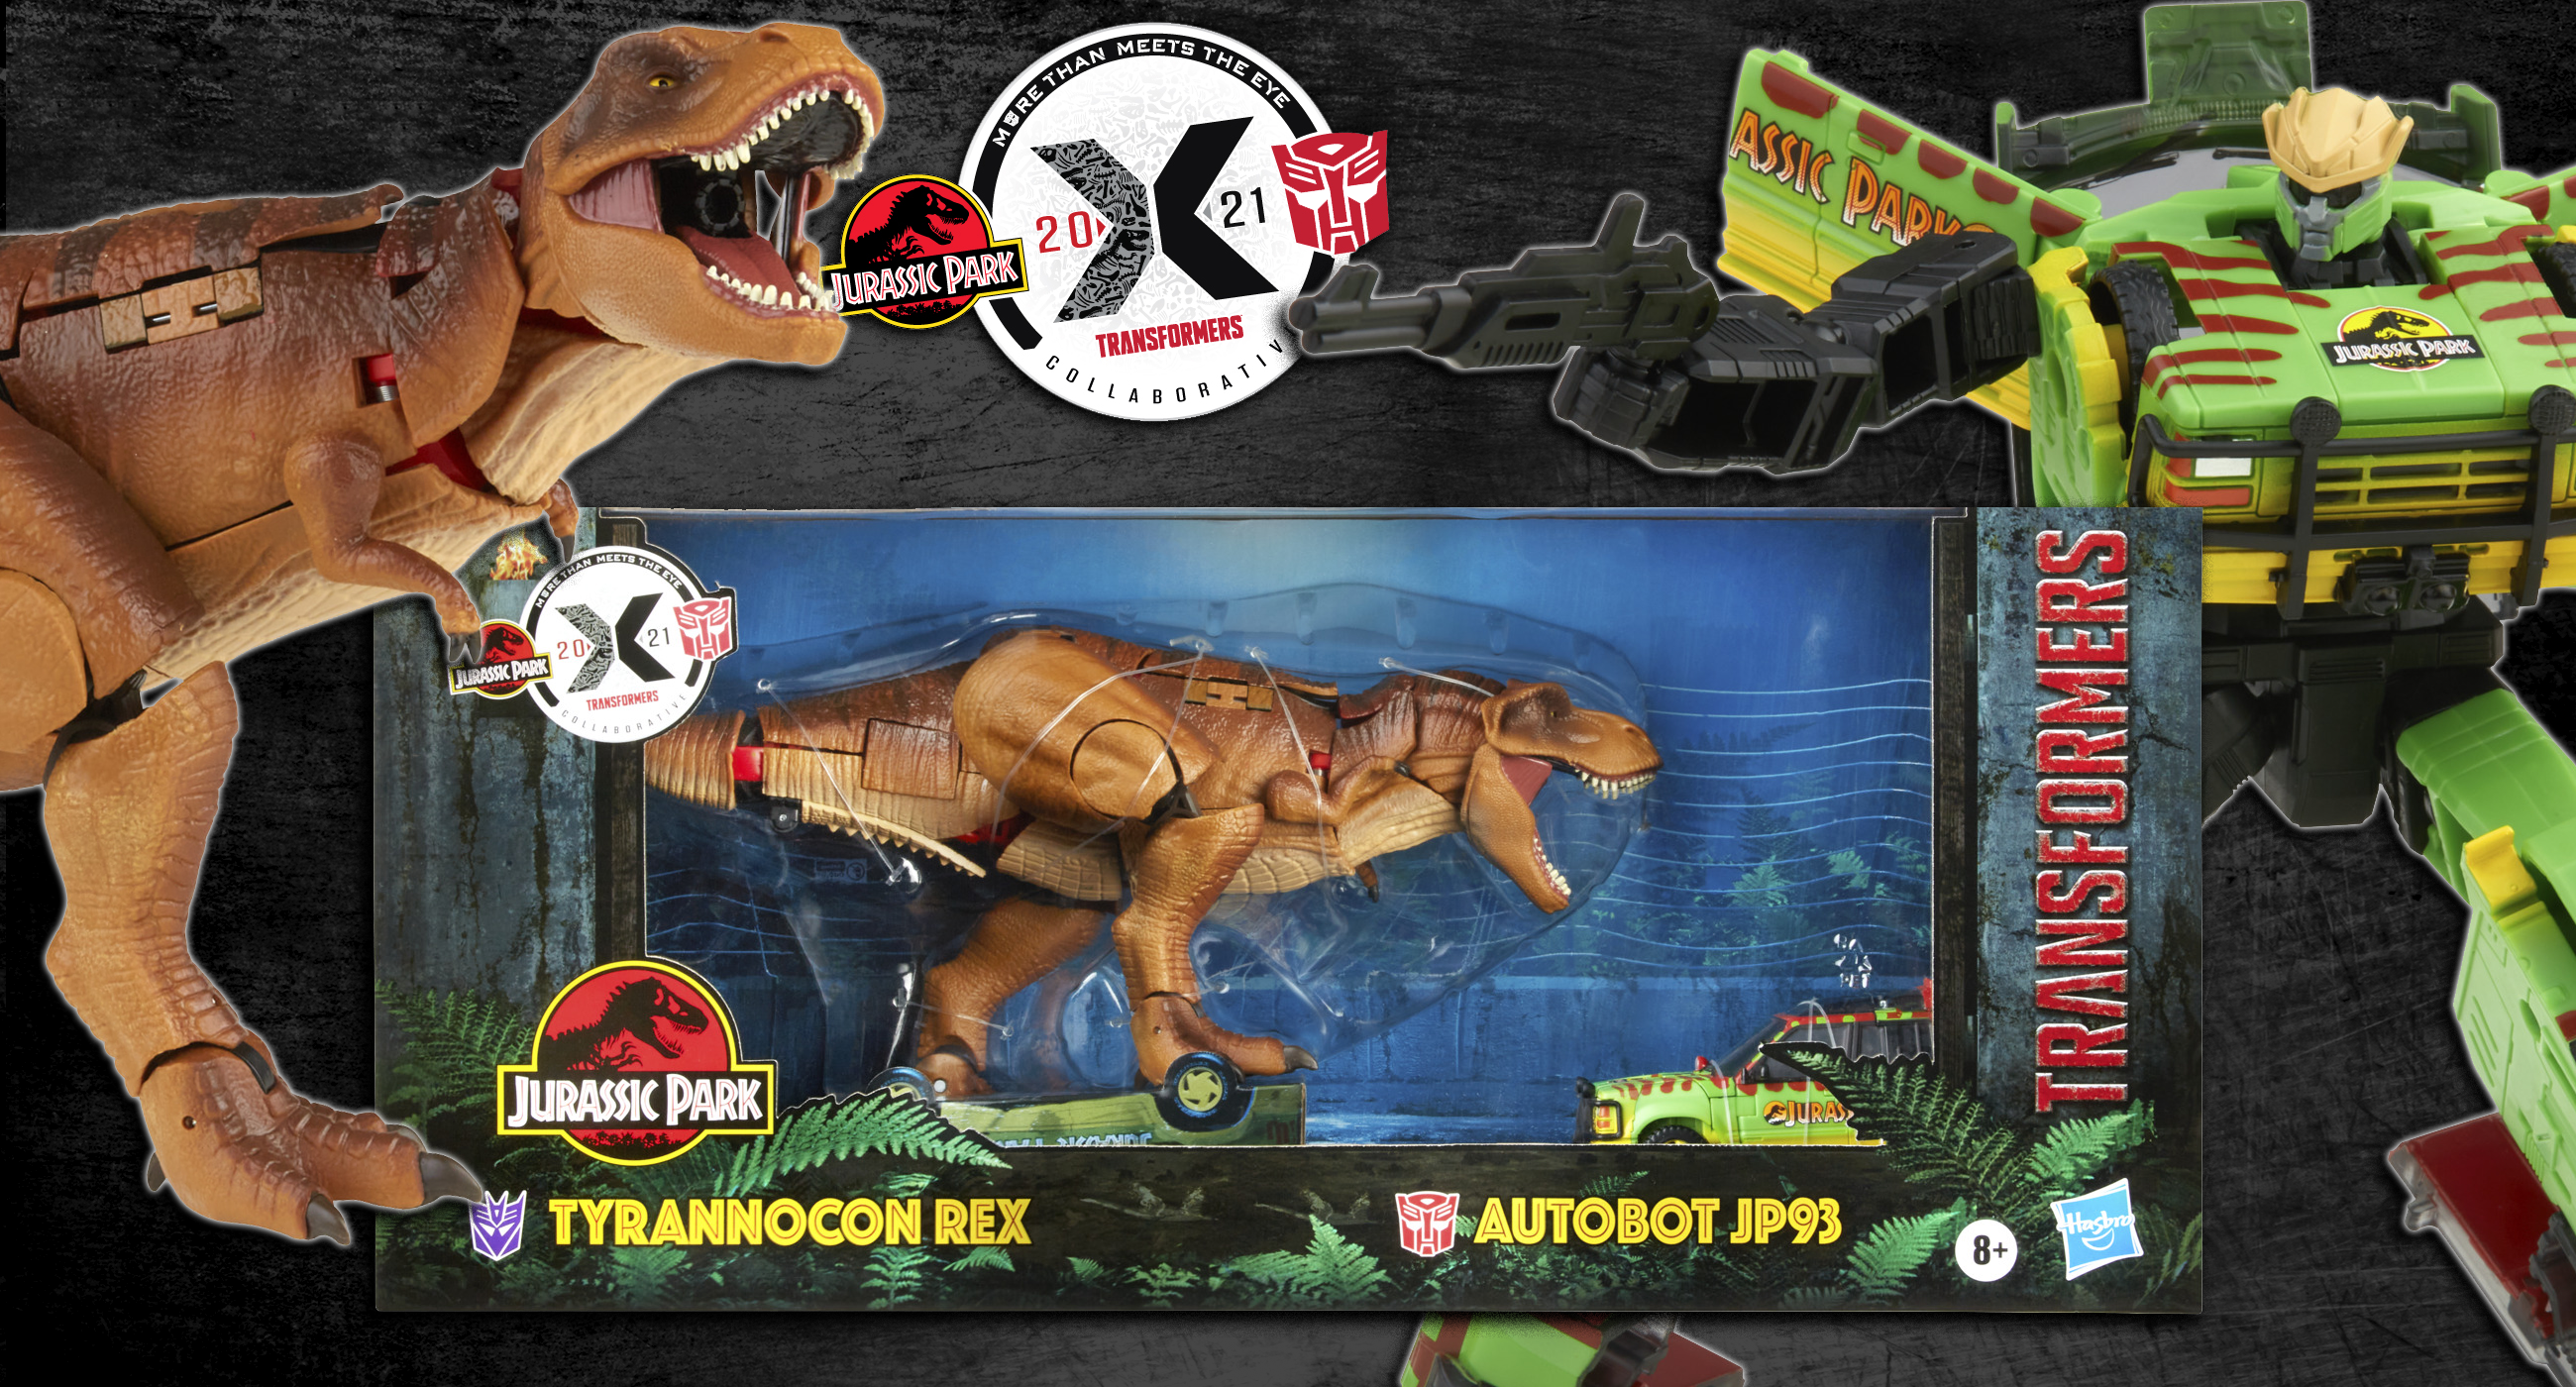 TRANSFORMERS X JURASSIC PARK: 'TYRANNOCON REX' vs 'AUTOBOT JP93' NOW AVAILABLE TO PRE-ORDER!